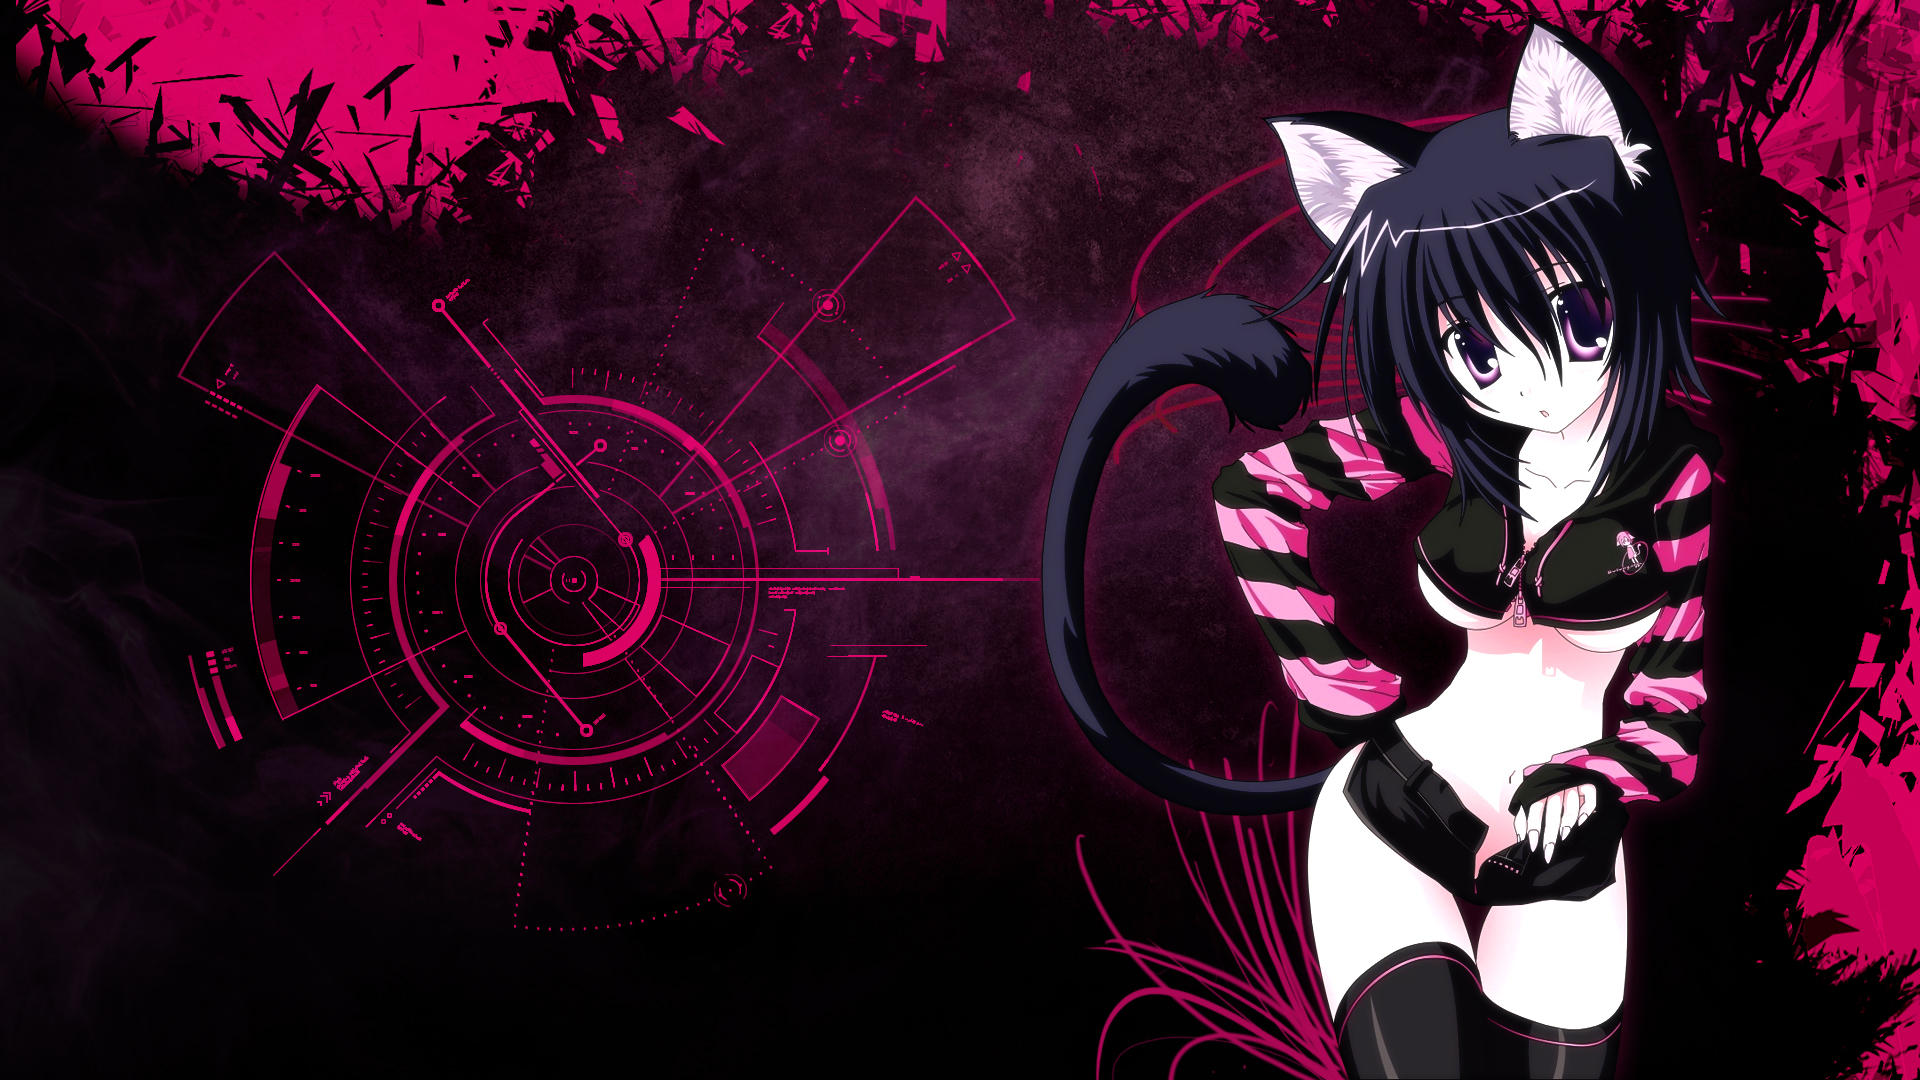 Neko Wallpaper by Siimeo on deviantART 1920x1080